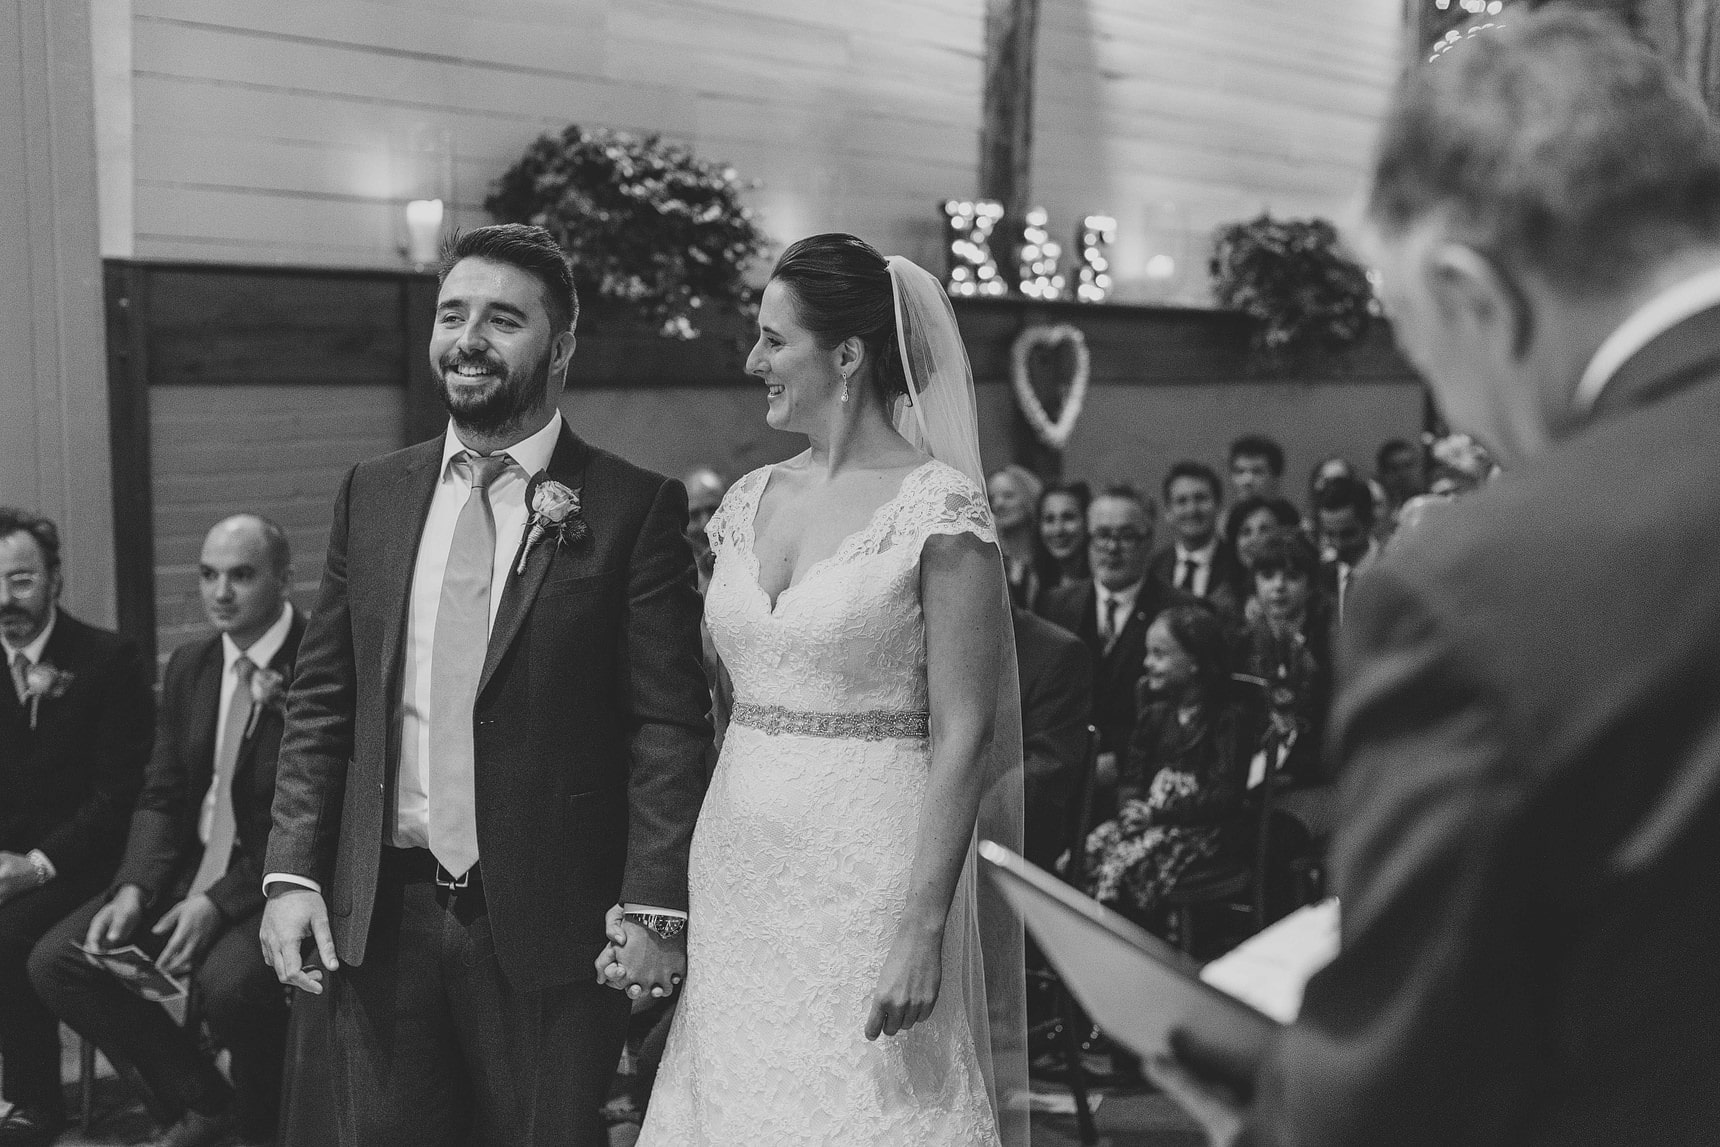 smiles from the bride and groom